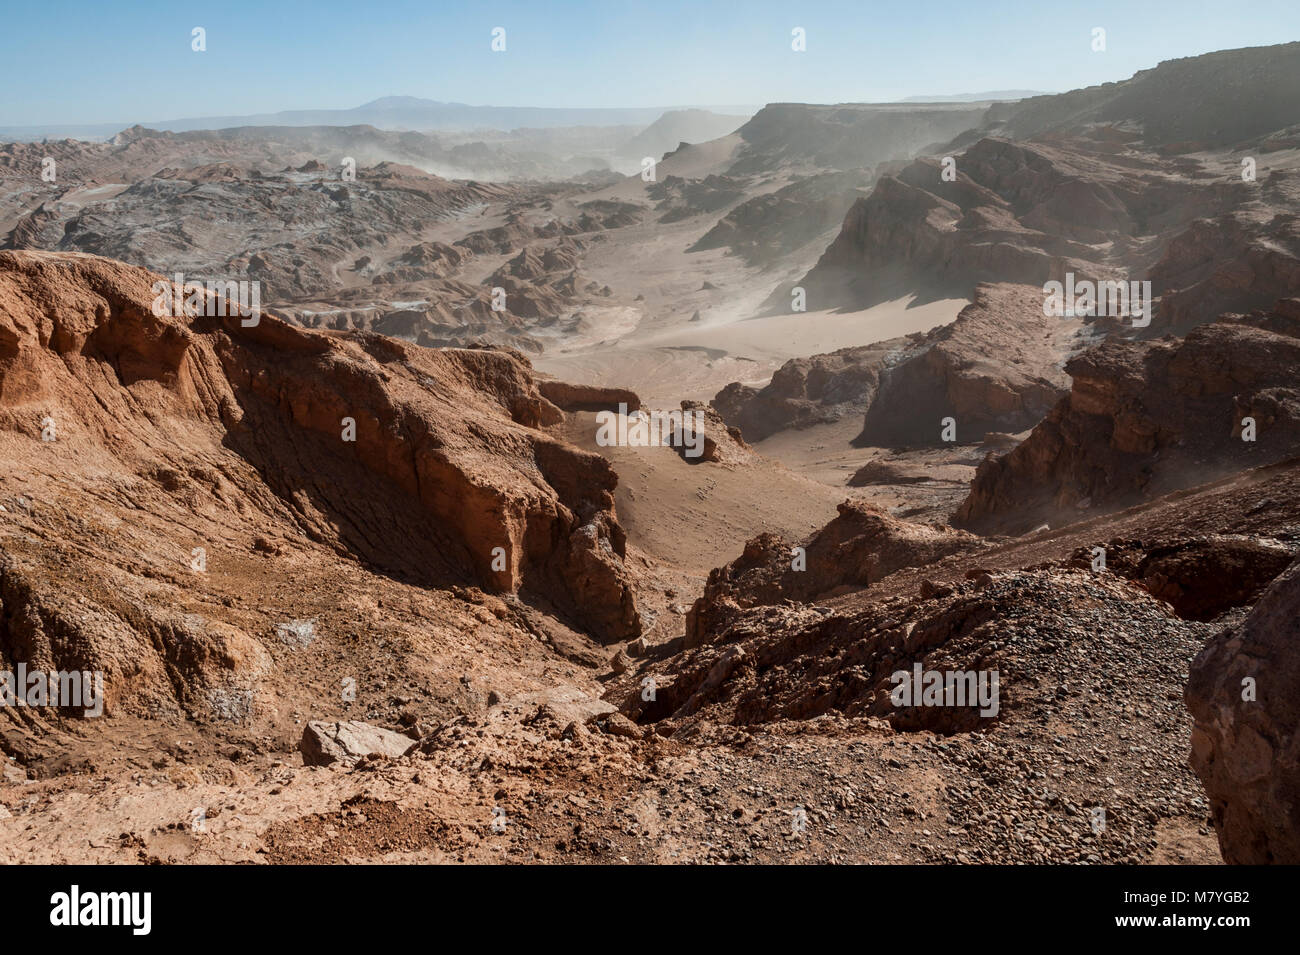 View of the Cordillera de la Sal, white Salt emerging from the Rocks, Saline Mountains in the Atacama Desert, Andes - Stock Image